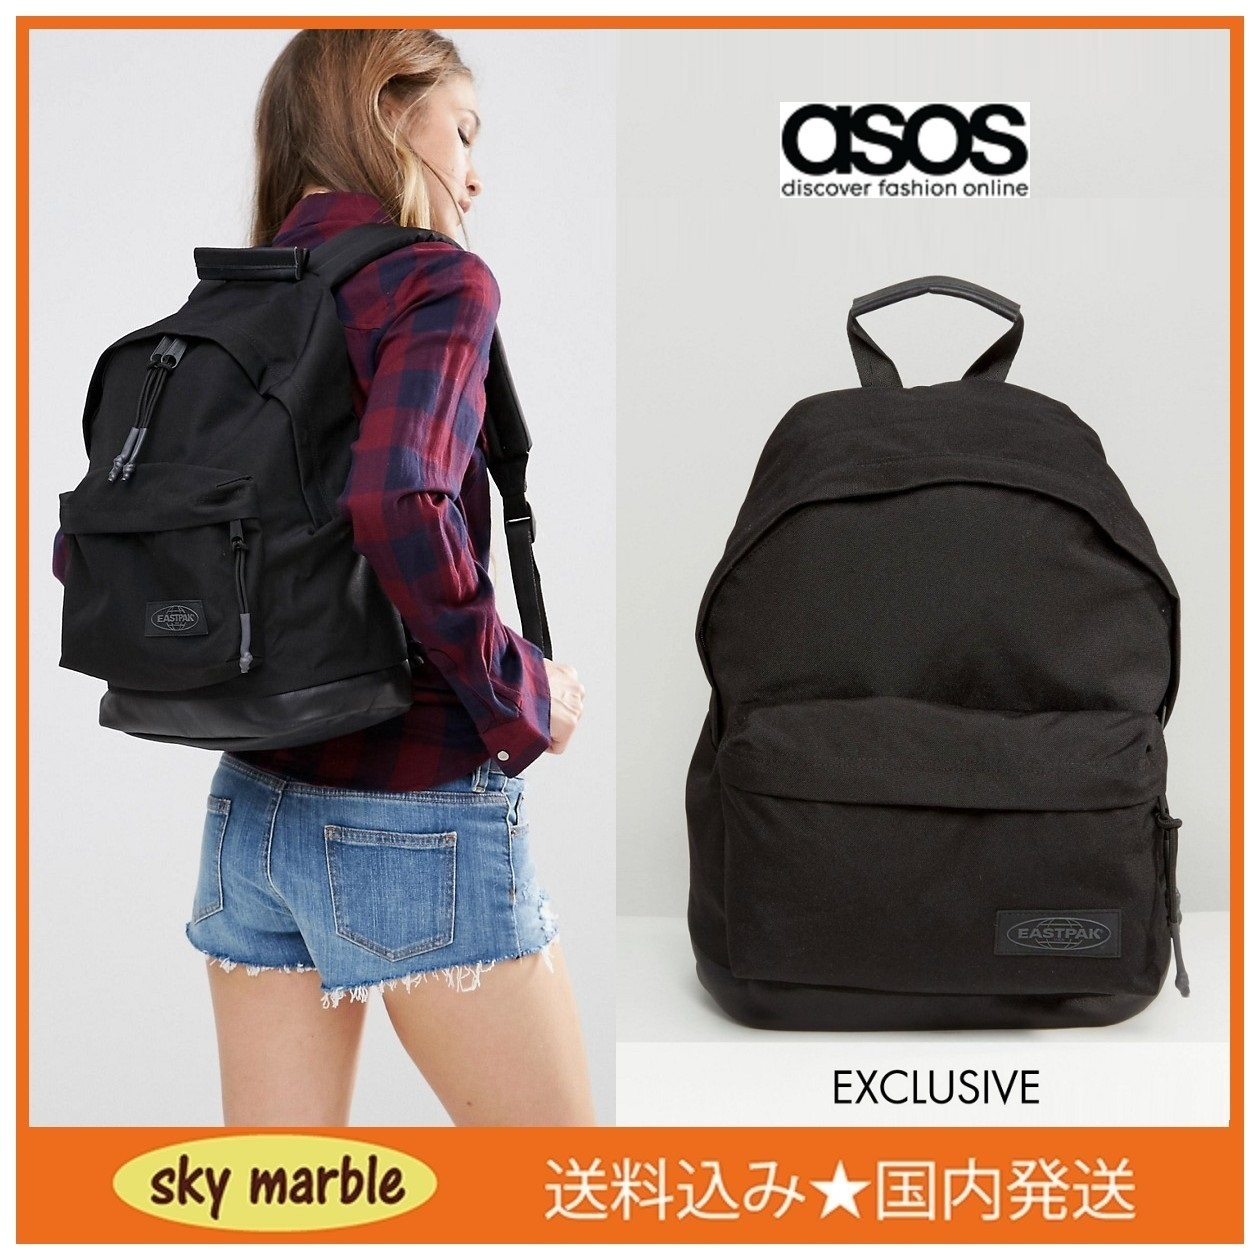 asosセレクト★Eastpak Exclusive Wyoming バックパック♪